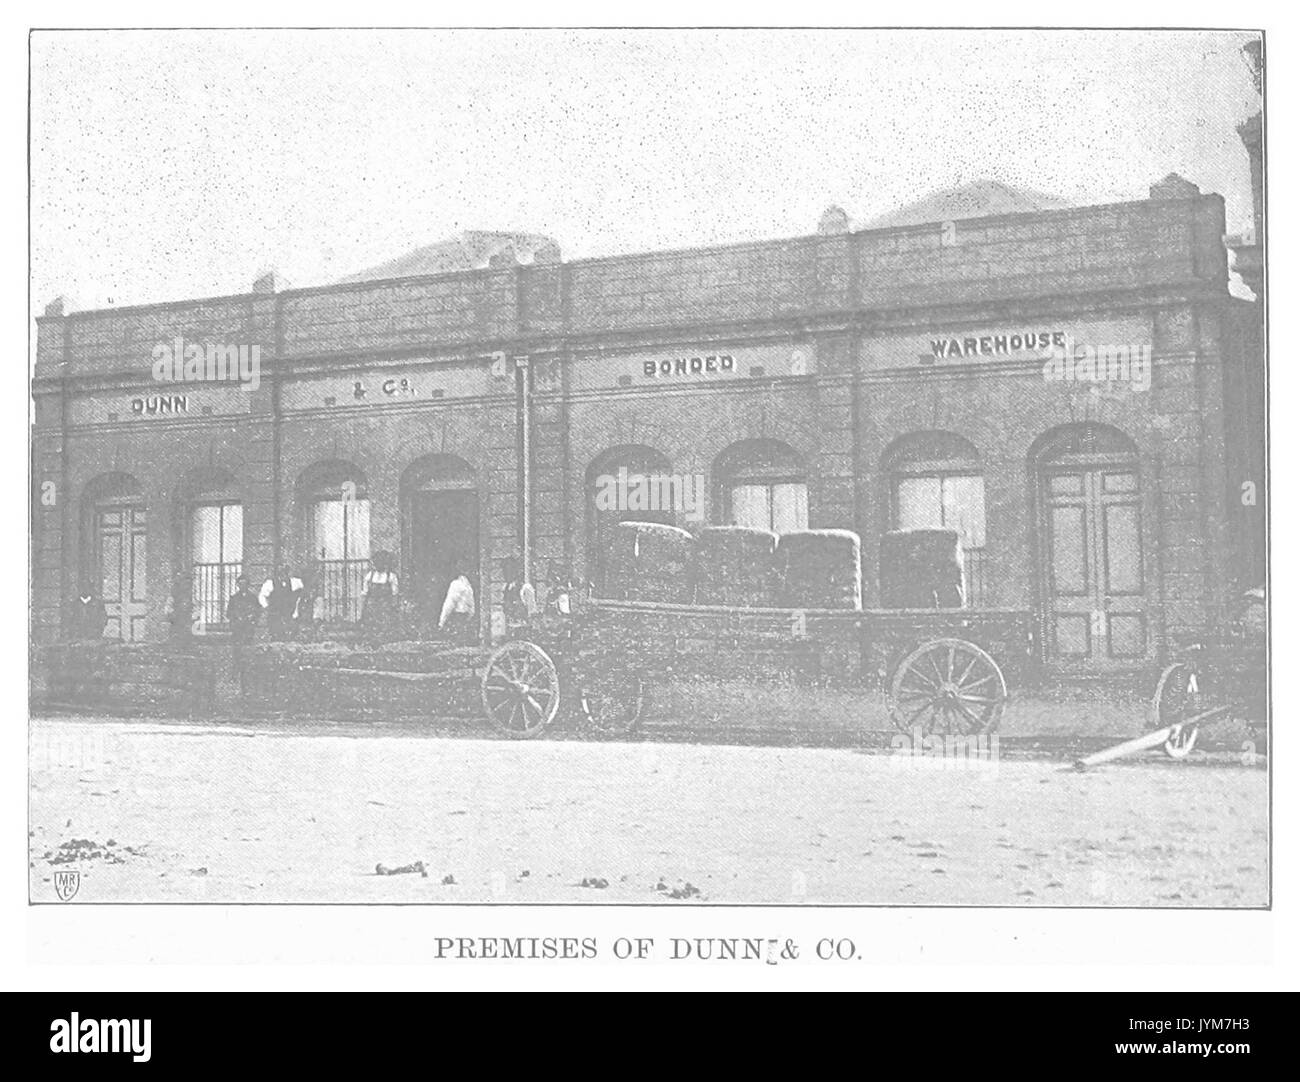 EL1893 pg055 Premises of Dunn and Co - Stock Image